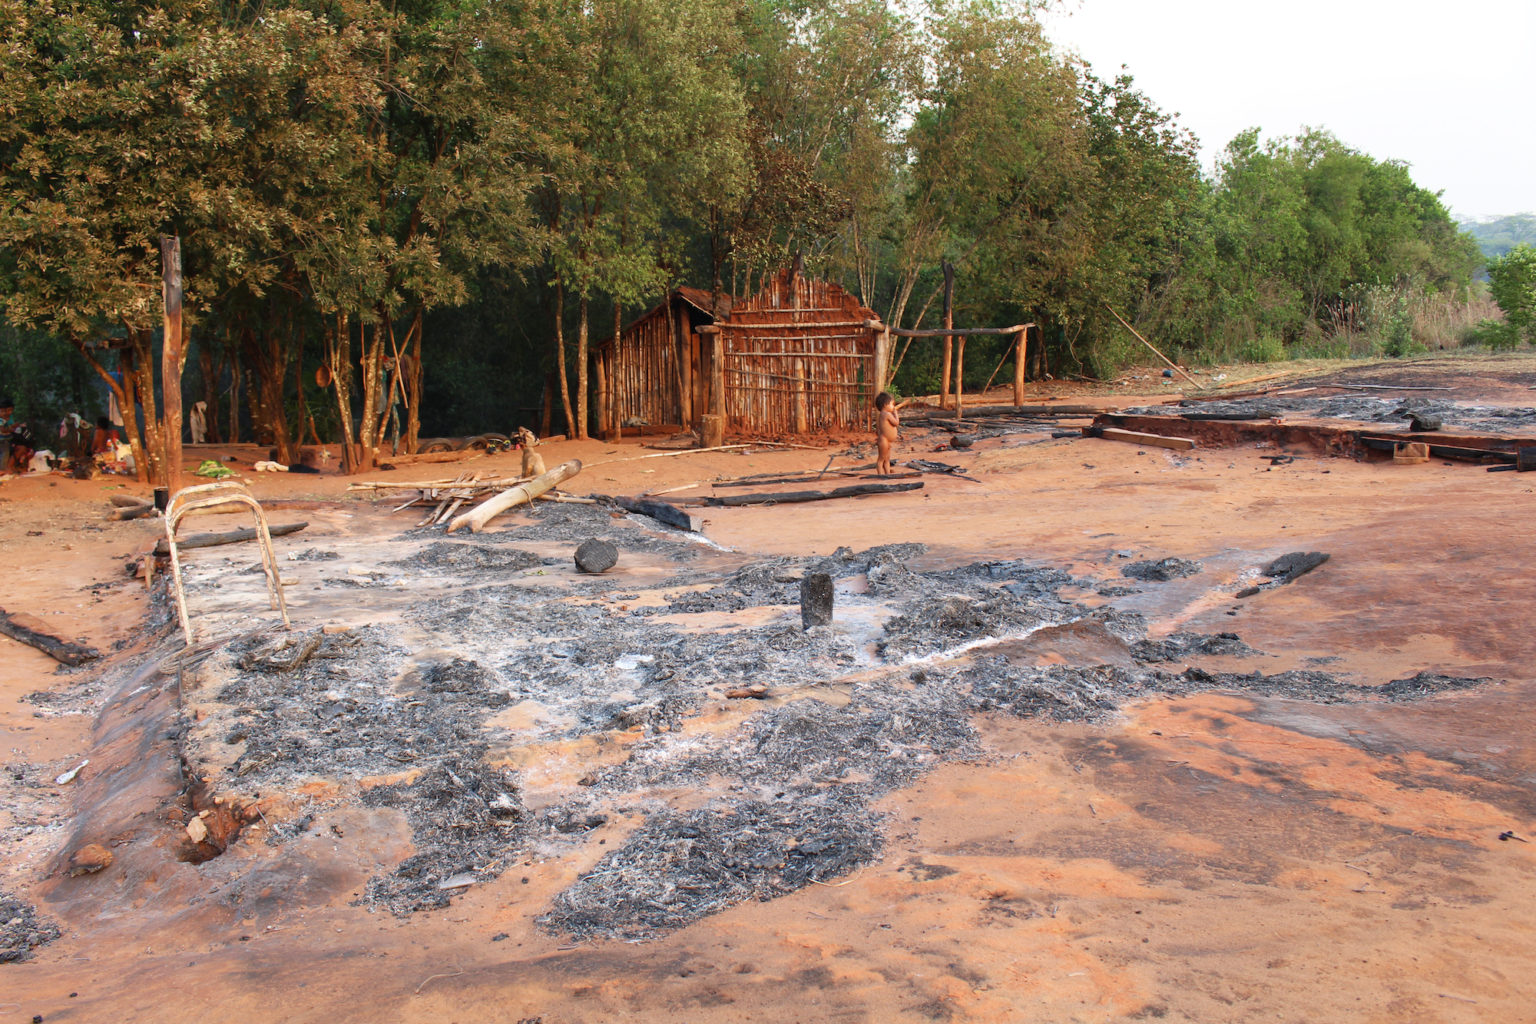 The fire affected several indigenous communities living within the reserve. The family home of Ramón Benítez, a member of the Pykasu'i community, was destroyed by the flames. Image by Hugo Garay/WWF.